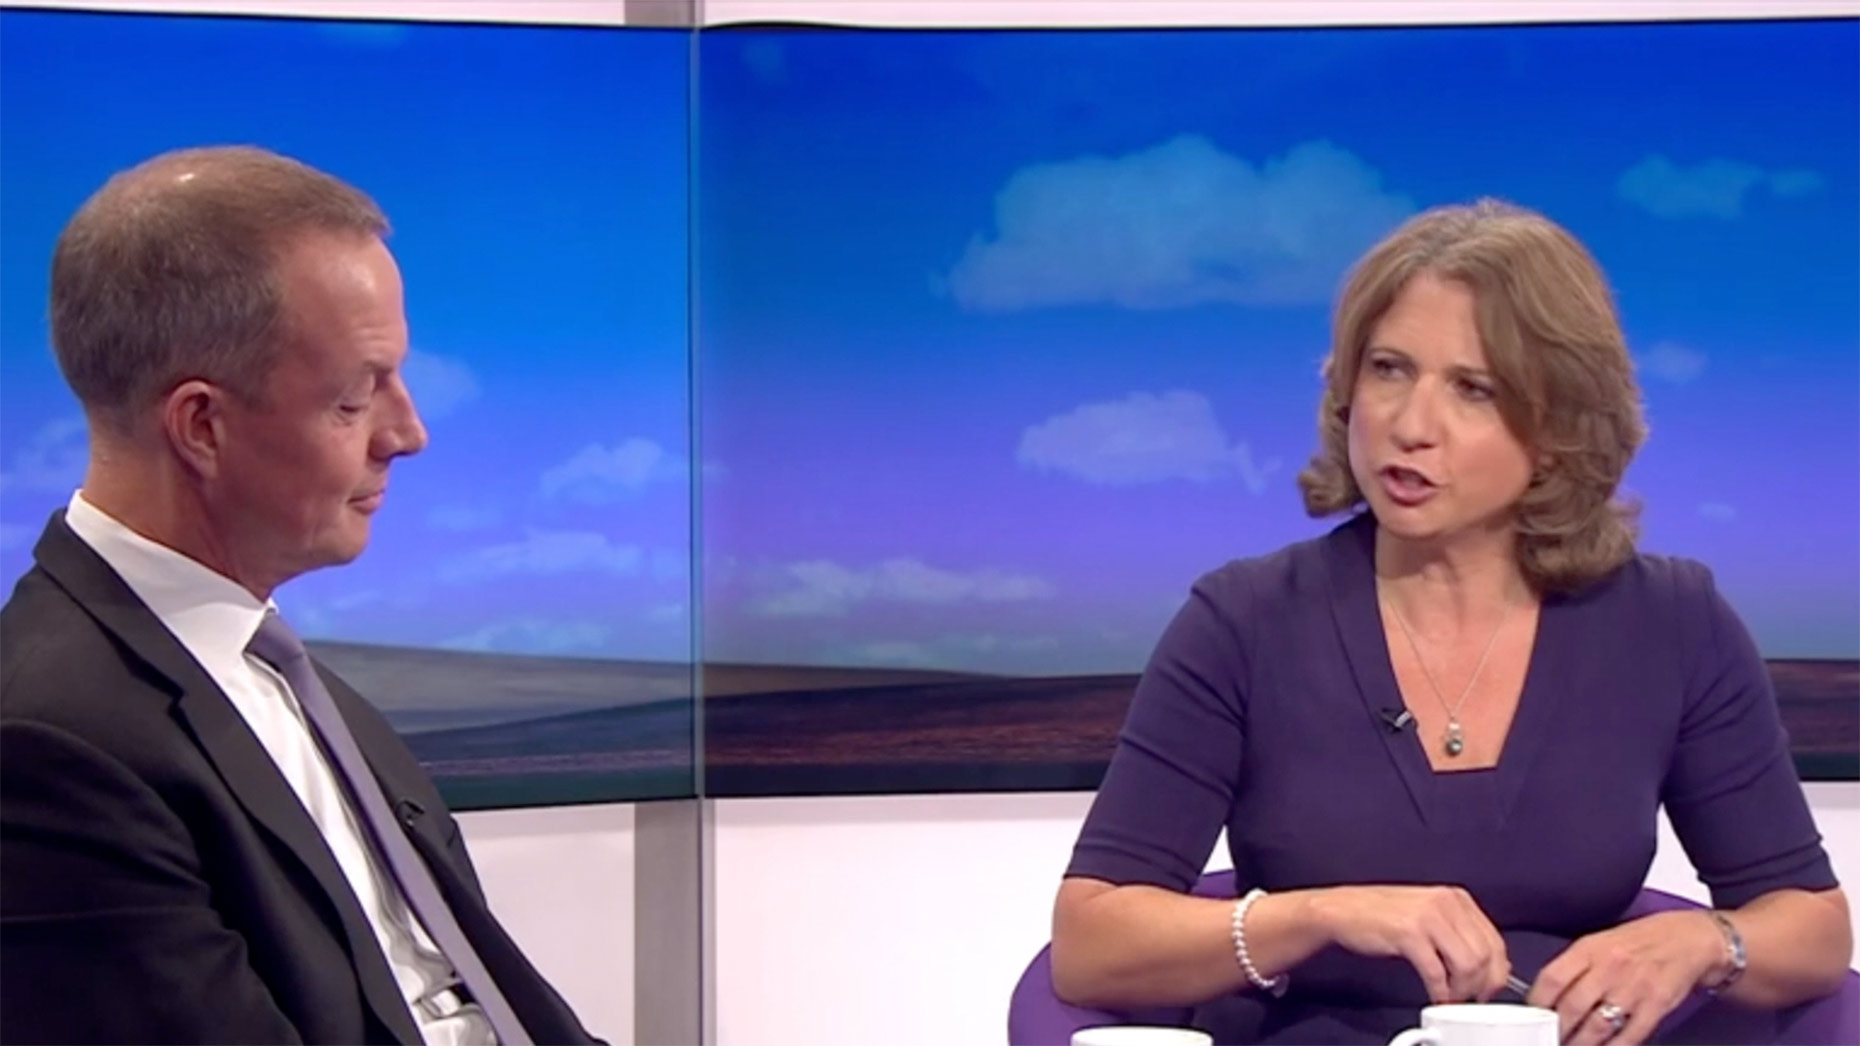 Boles looking unimpressed at the questions being asked by BBC presenter Jo Coburn